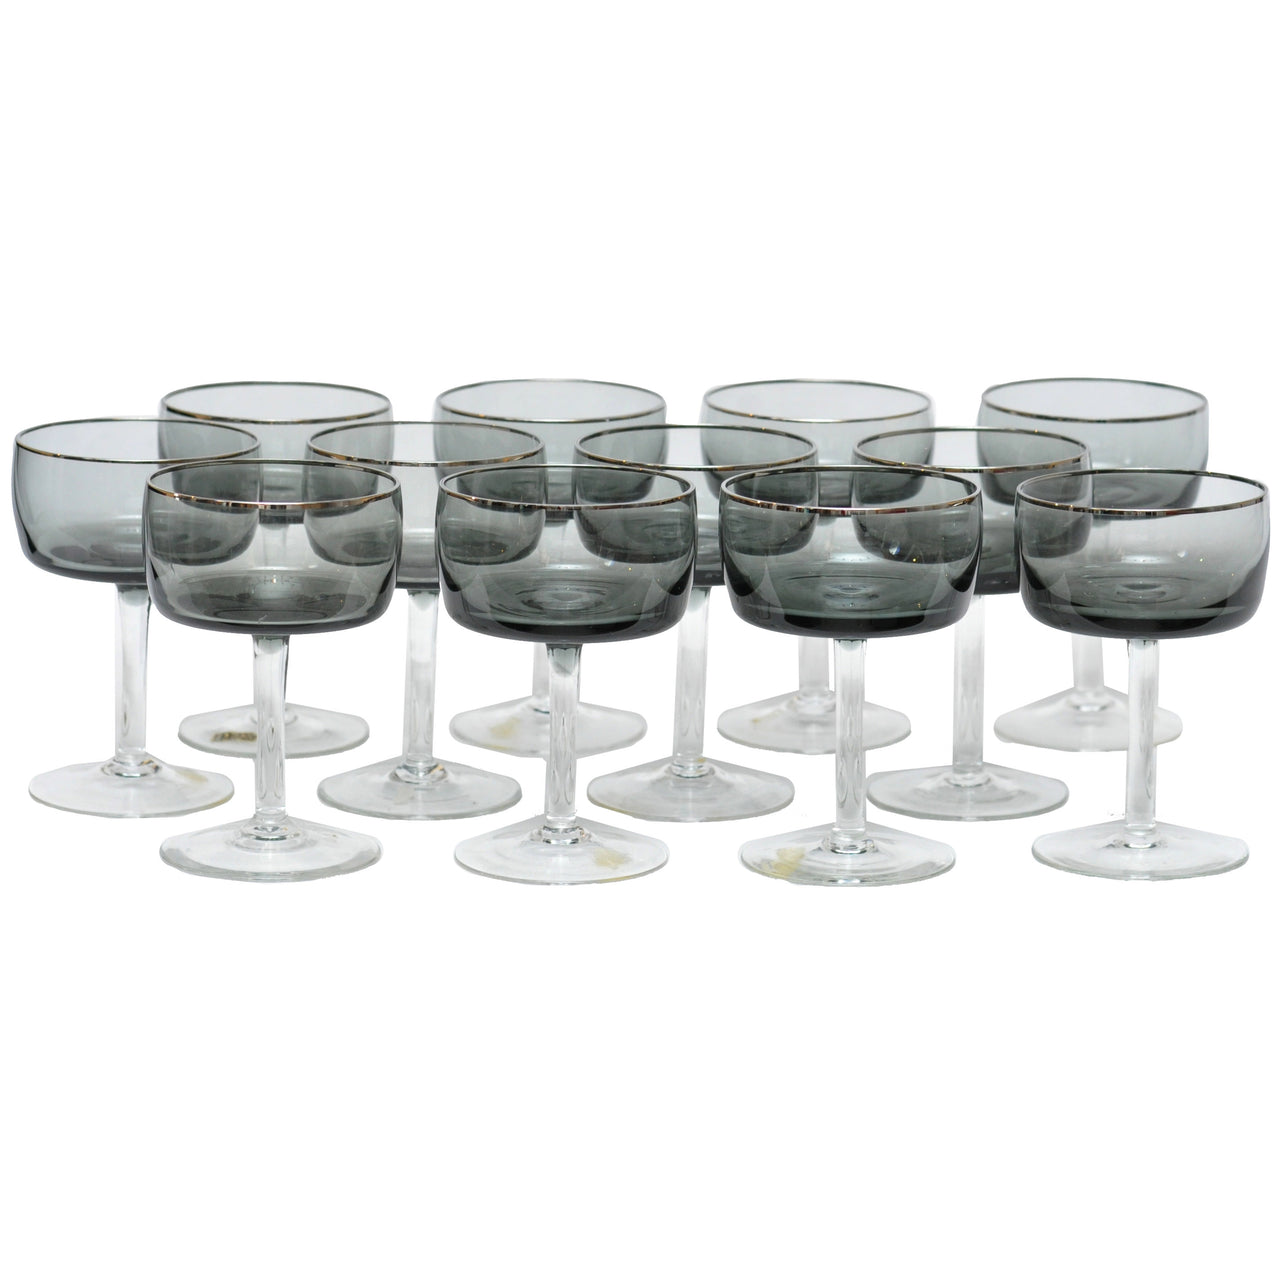 Silver Rim Smoke Coupe Glasses | The Hour Shop Vintage